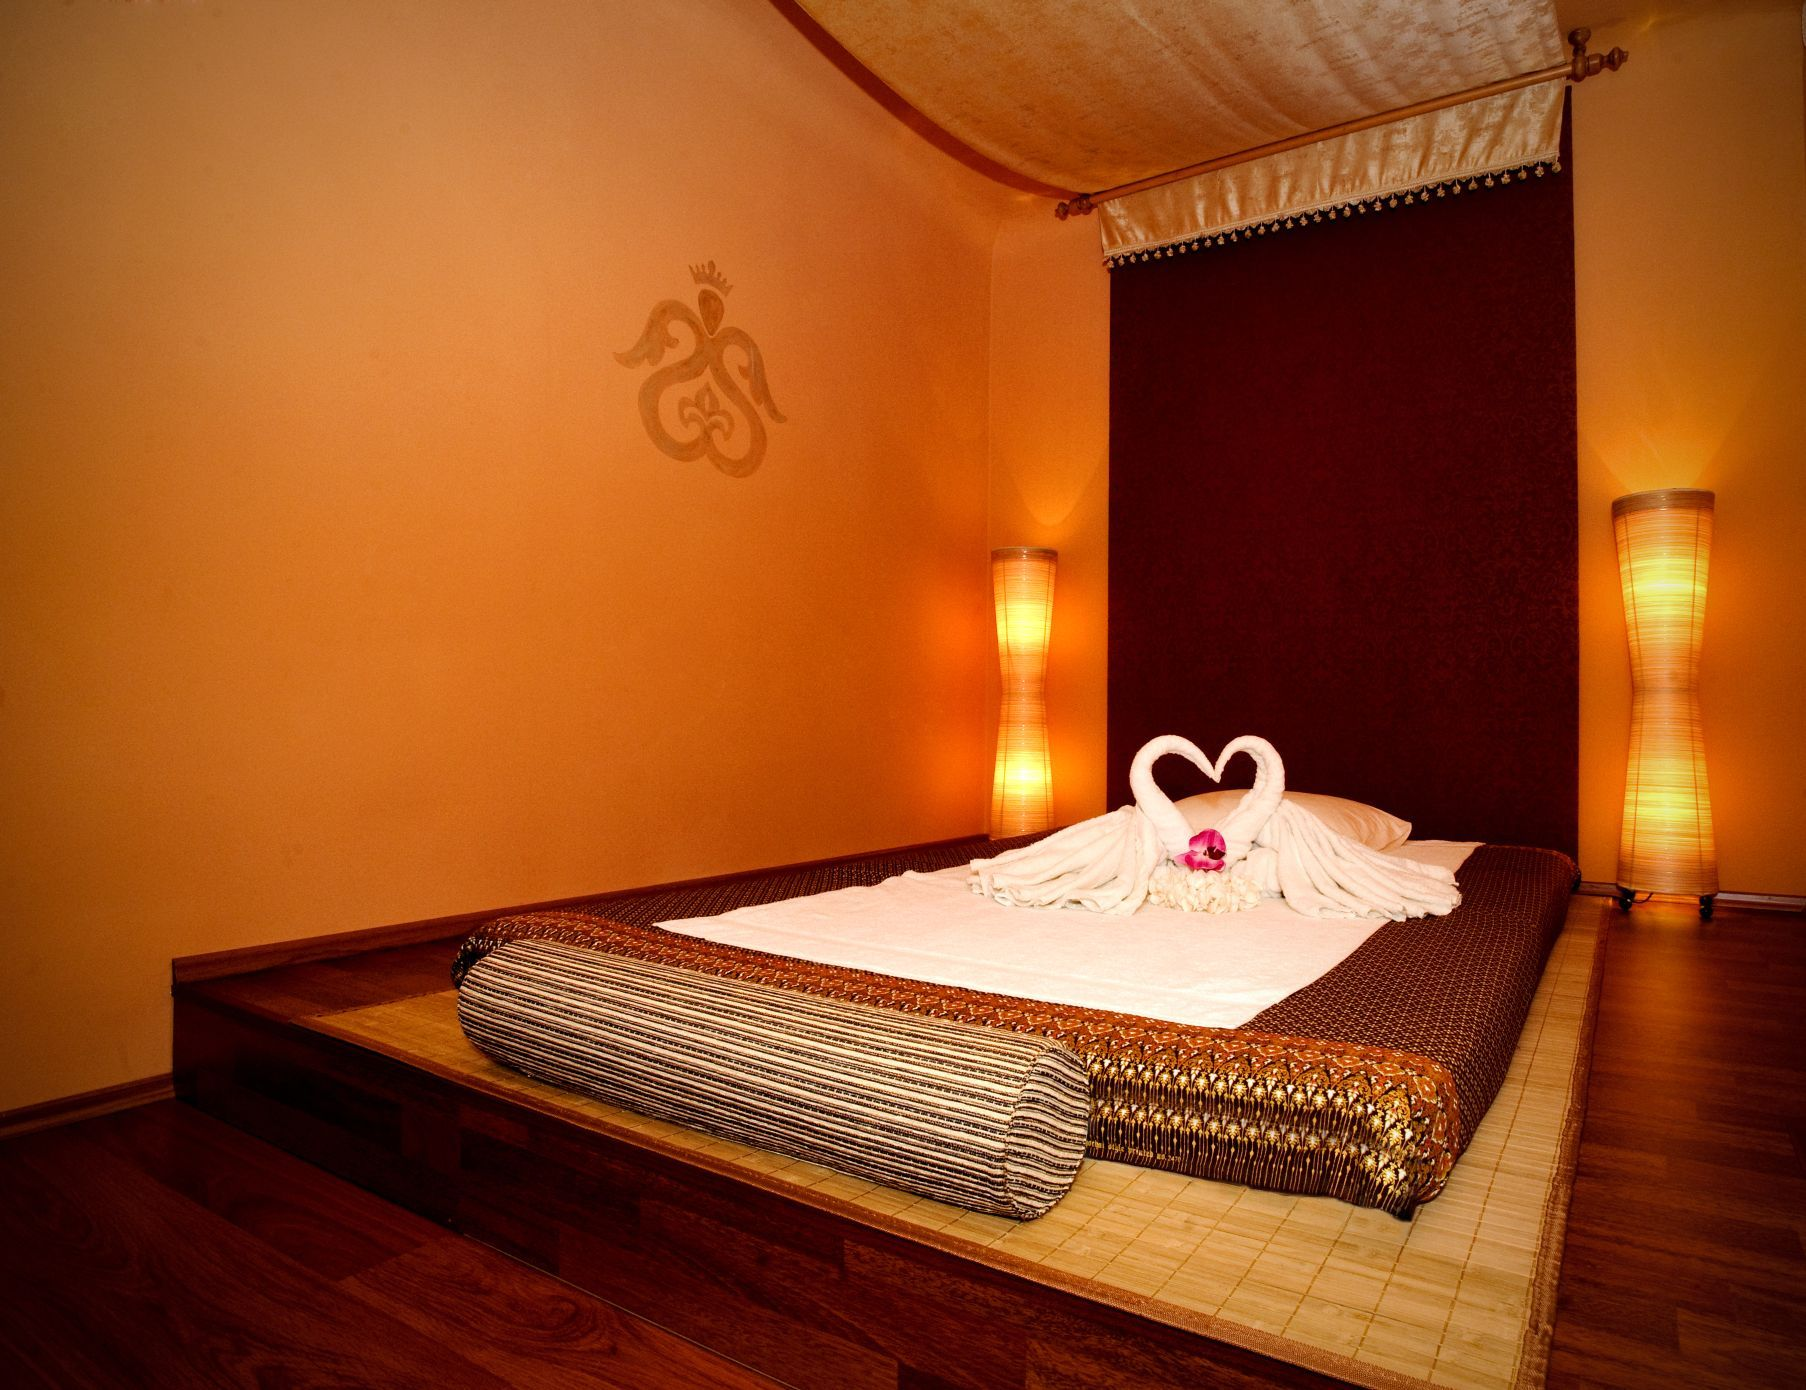 Bali spa interior treatment rooms google search for Spa interior designs